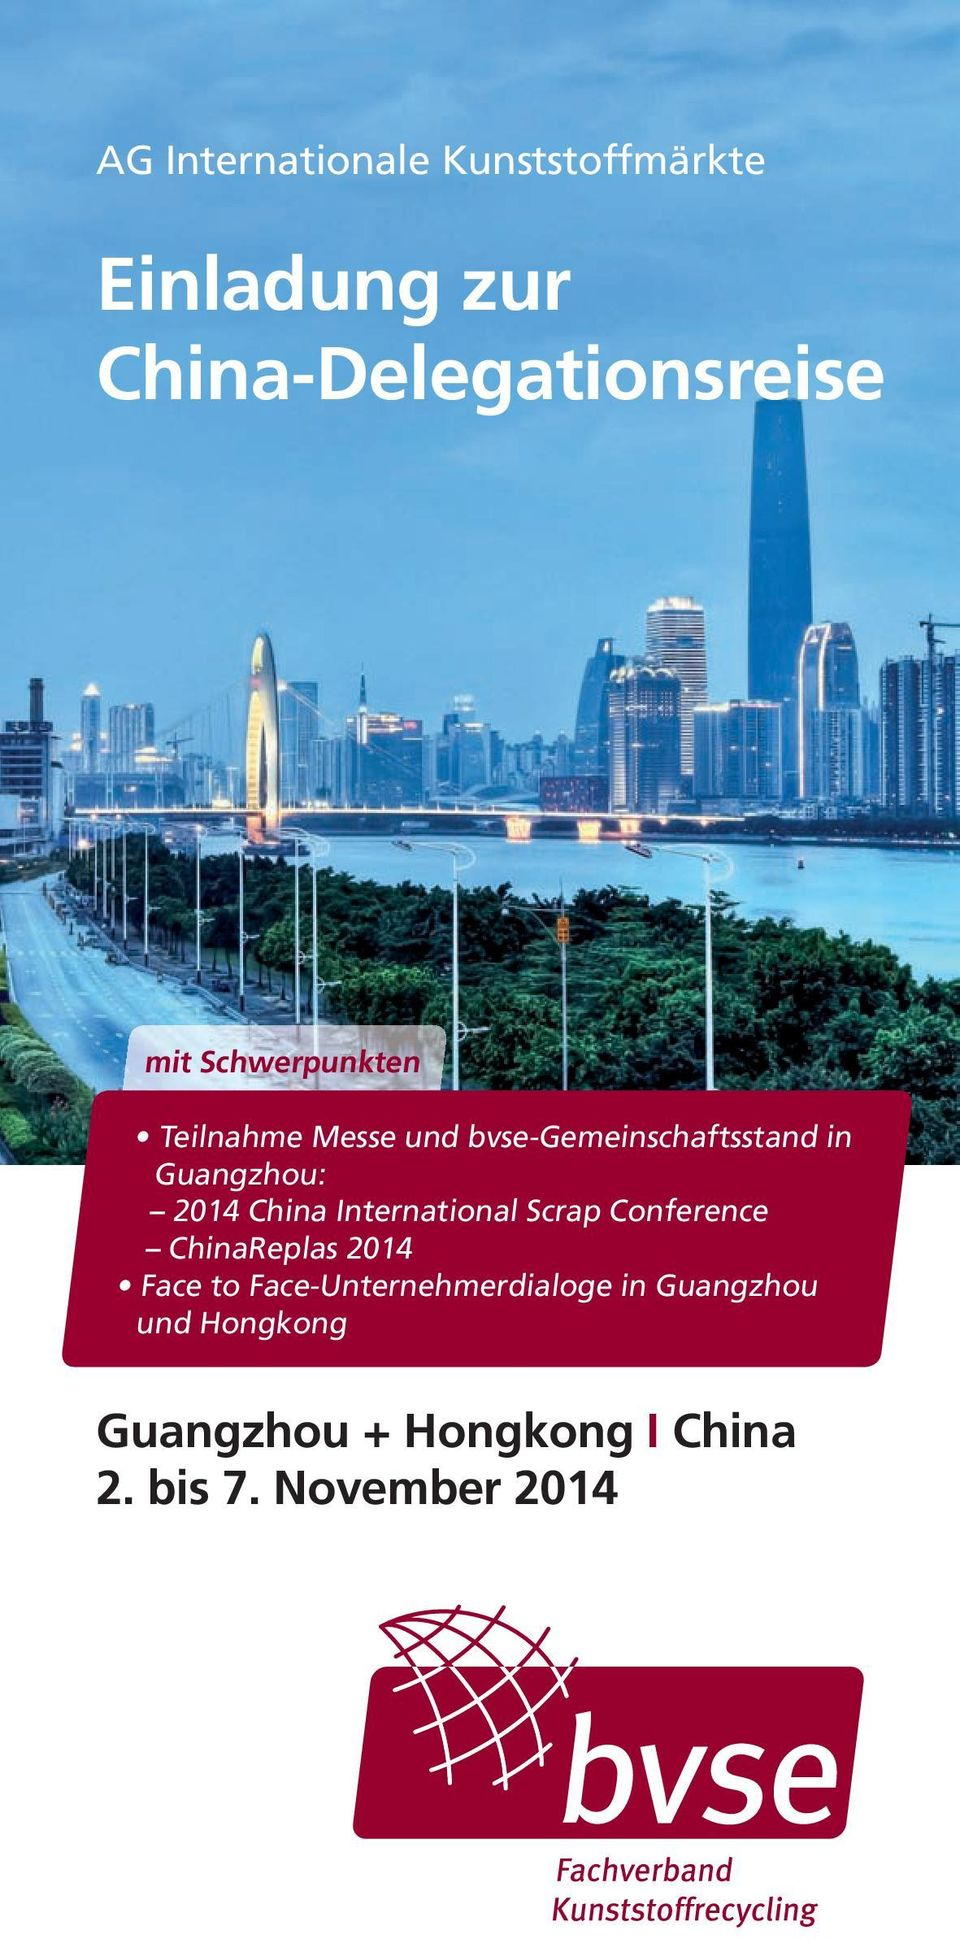 China International Scrap Conference ChinaReplas 2014 Face to